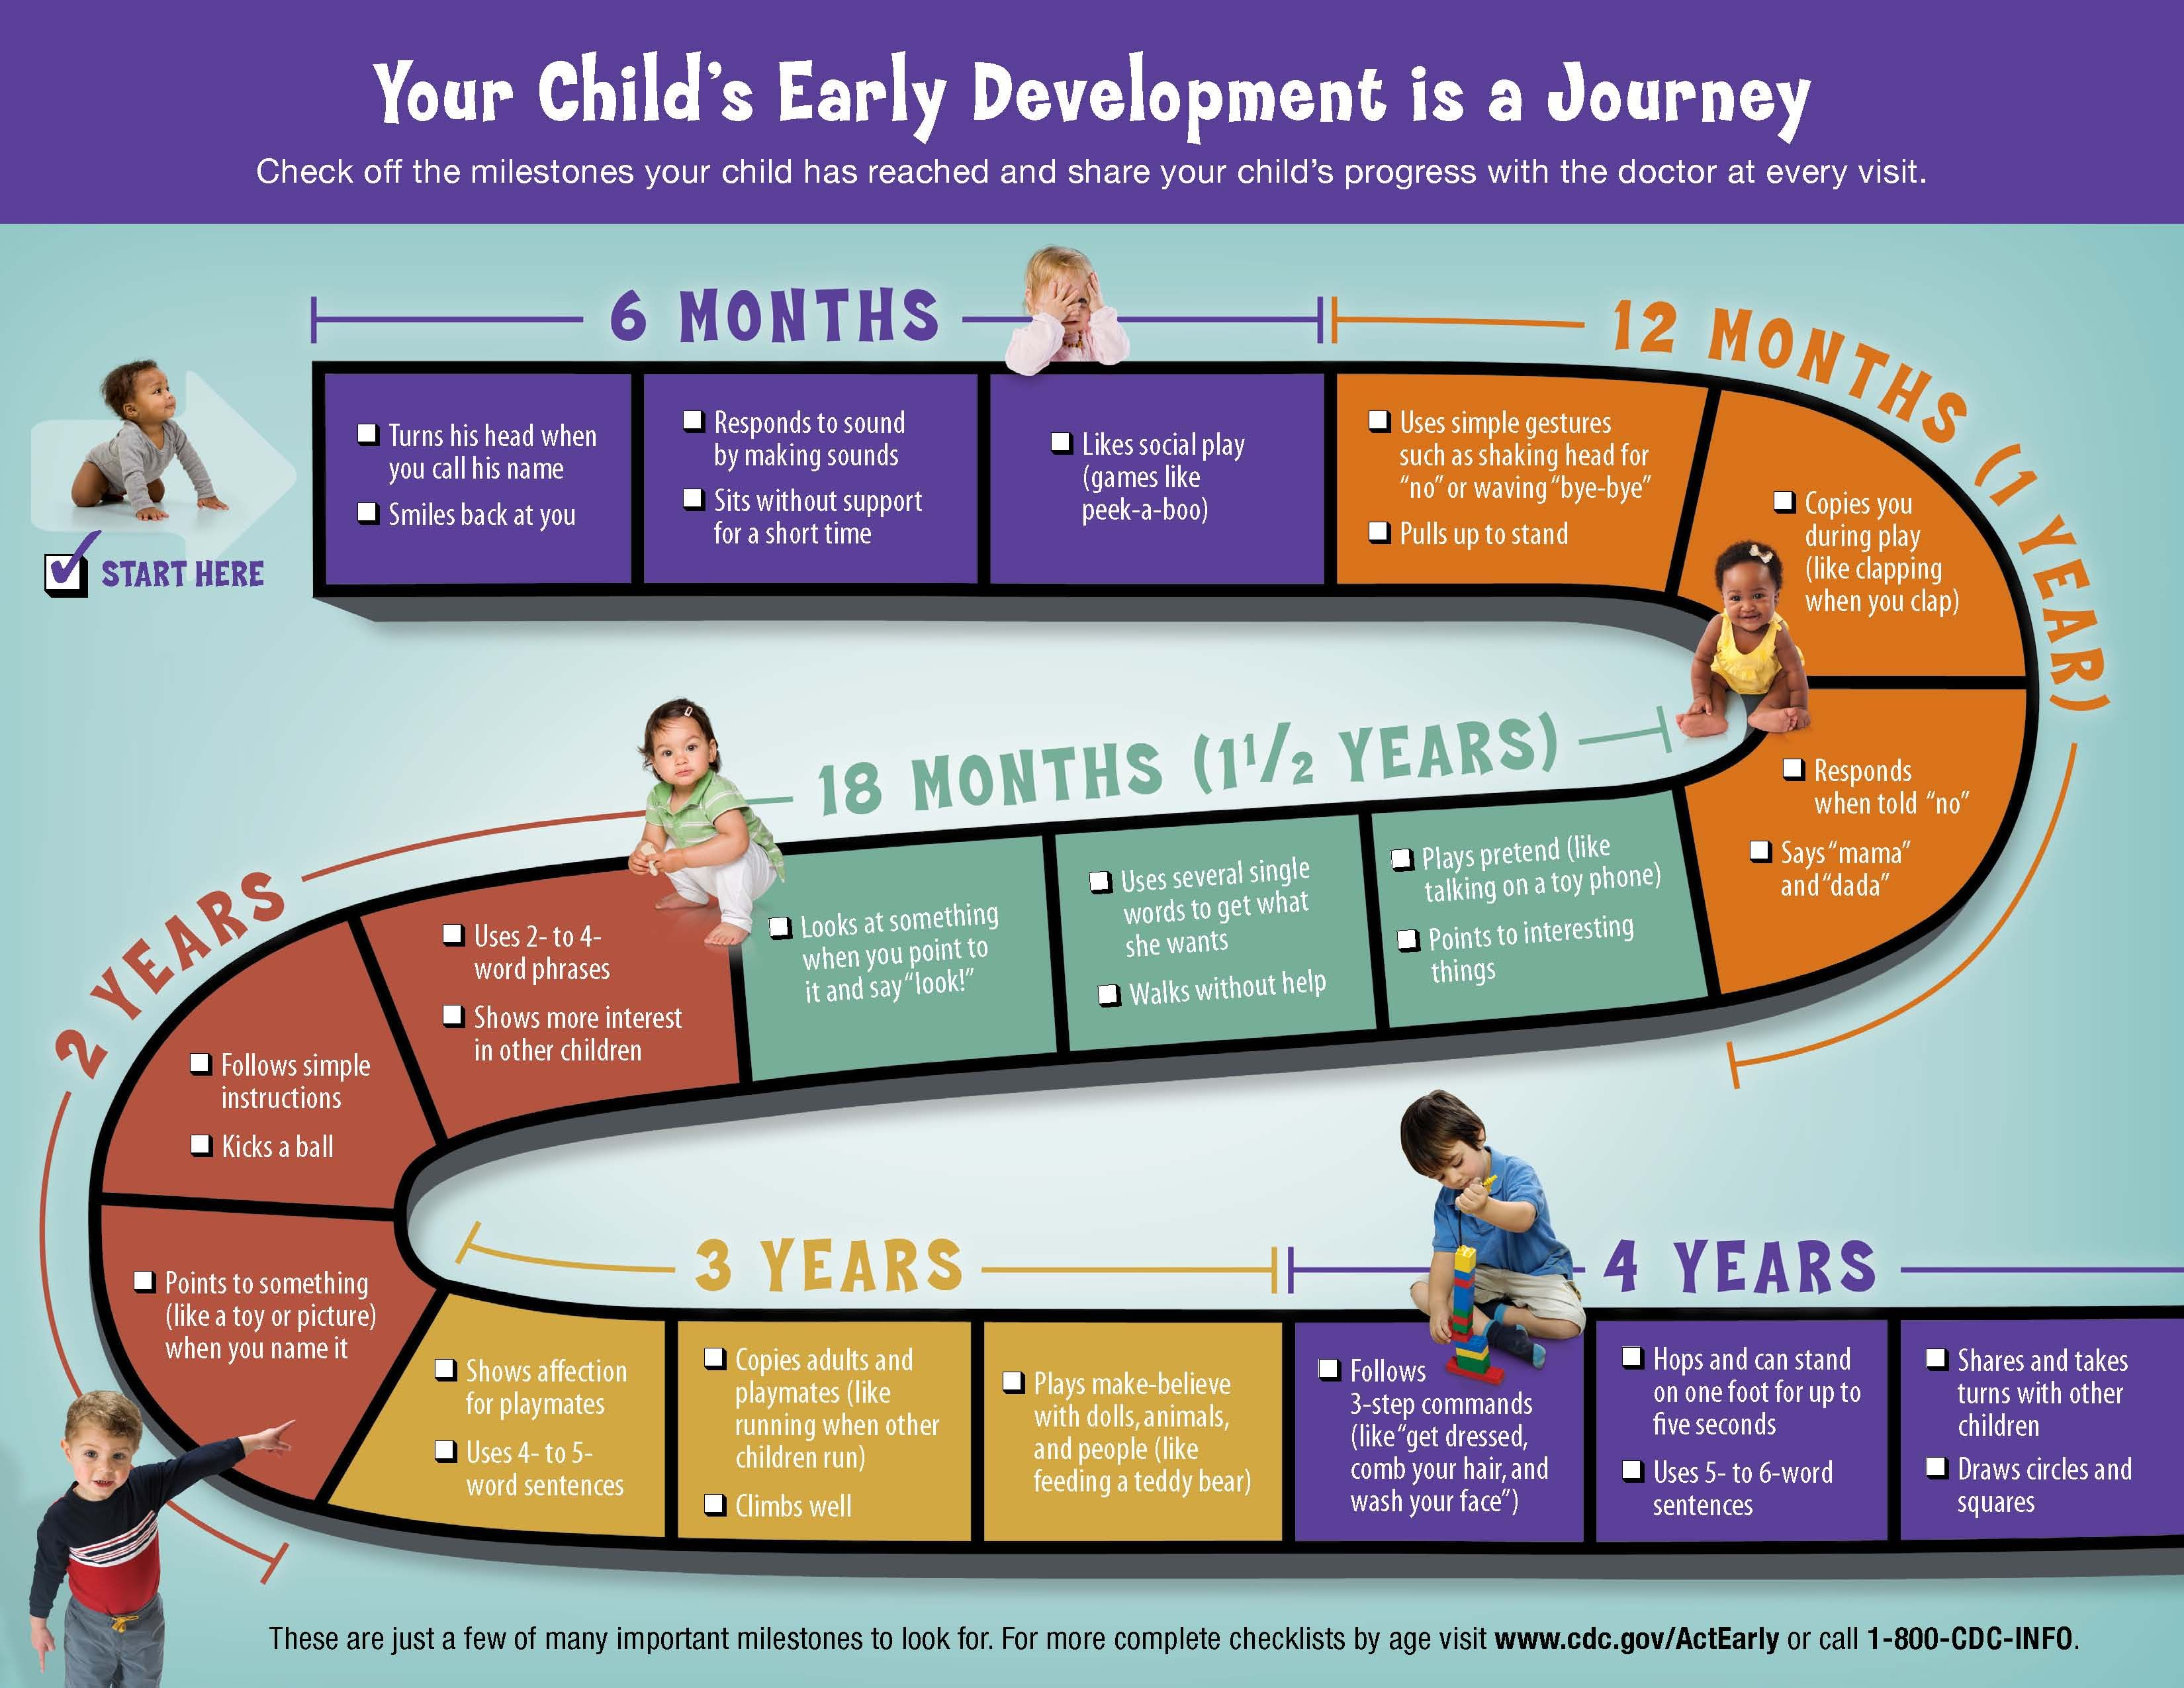 Baby & Toddler Development Milestones: 0-3 Months